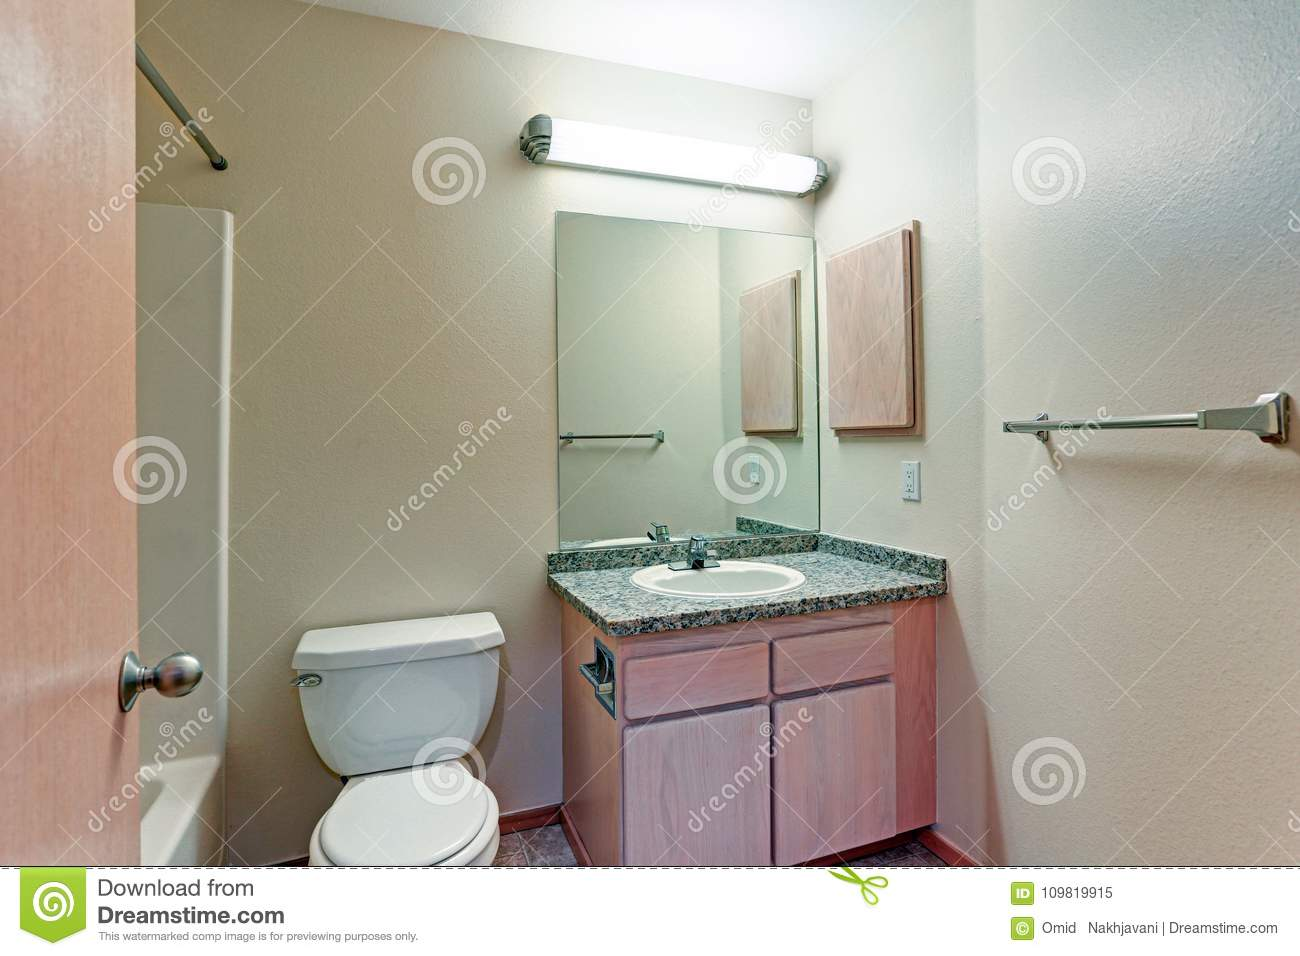 Bathroom With Light Wood Vanity Cabinet Stock Image Image Of Home House 109819915